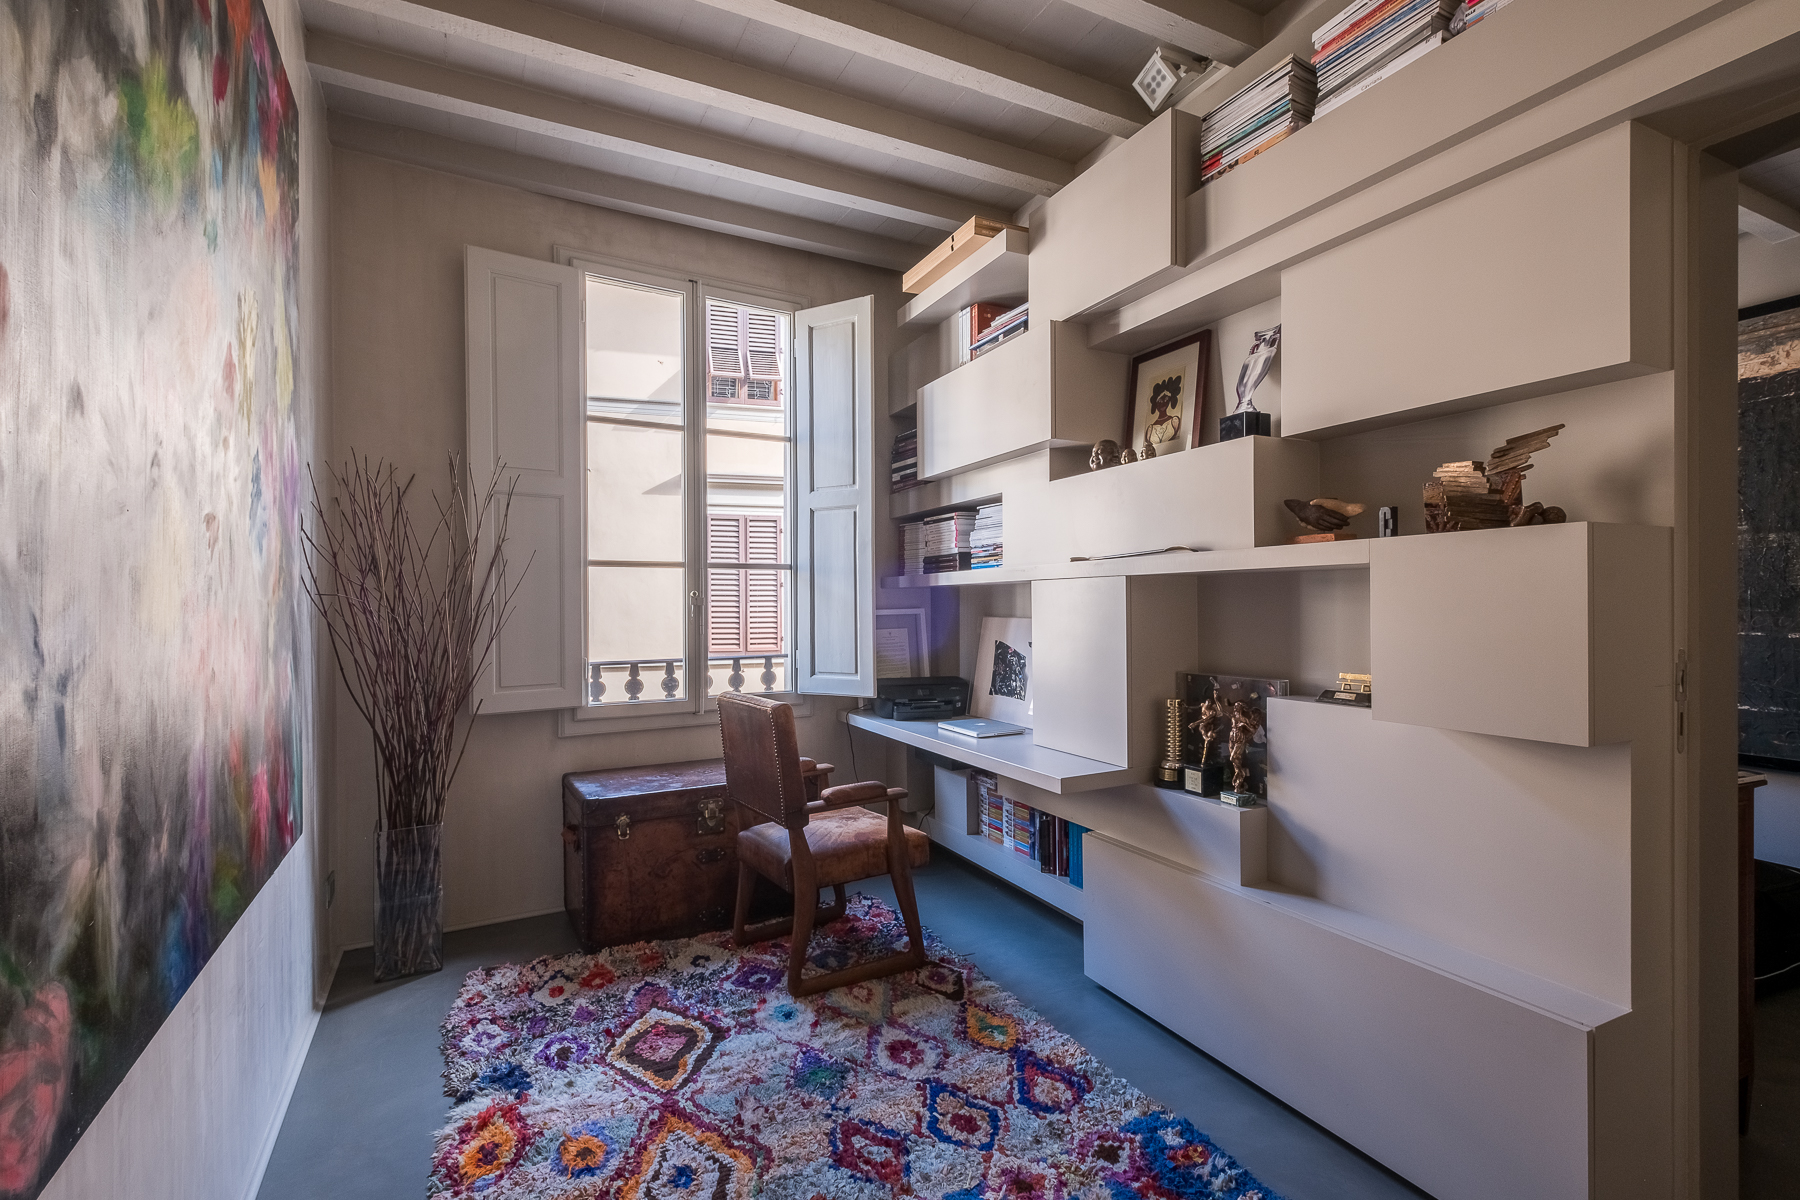 Additional photo for property listing at Magnificent design apartment with spa in the heart of Florence Via Santa Monaca Firenze, Florence 50100 Italy